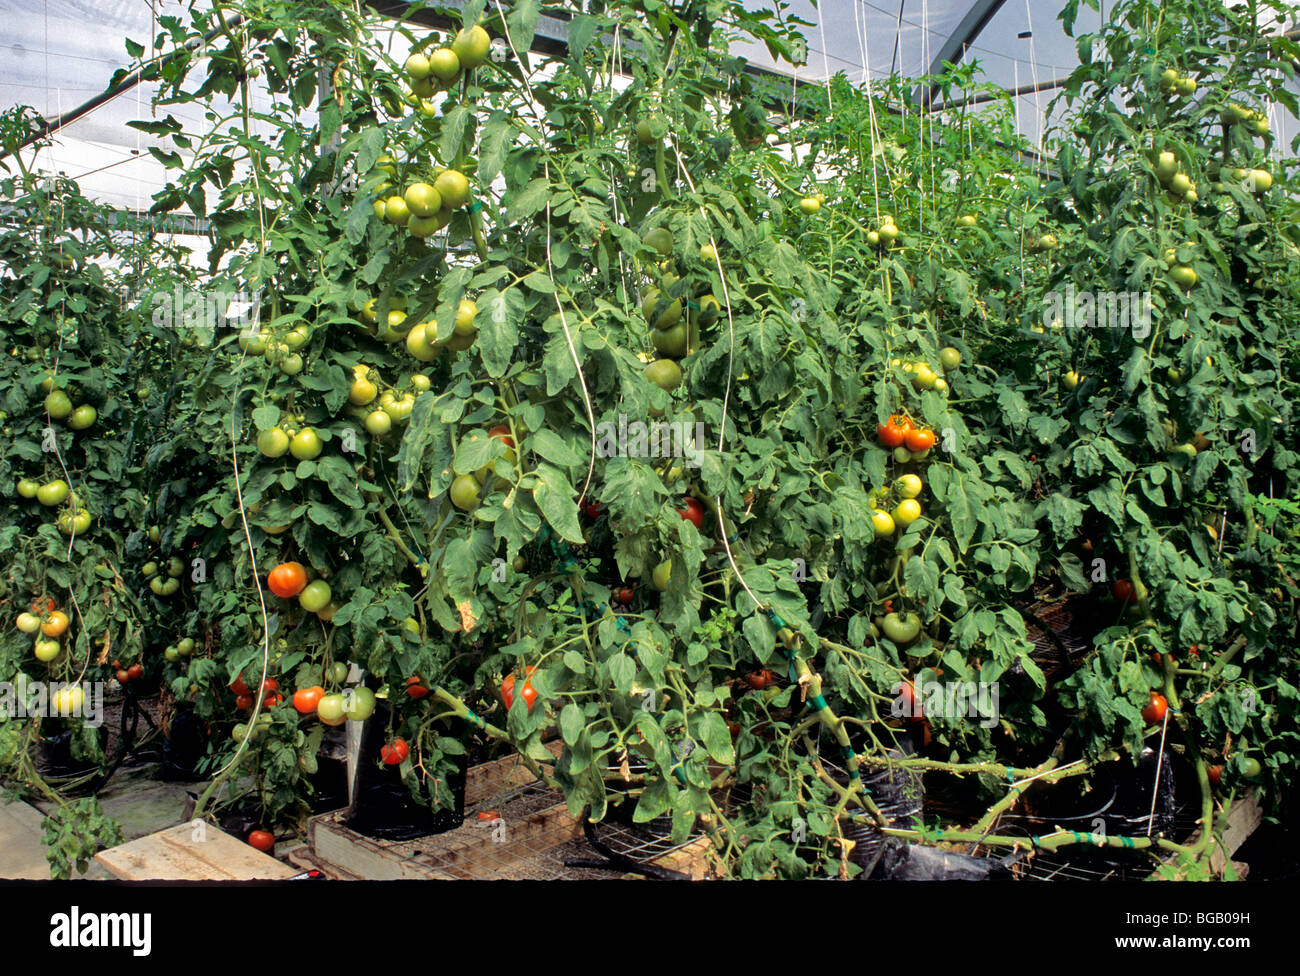 Tomatoes, greenhouse, hydroponic. - Stock Image